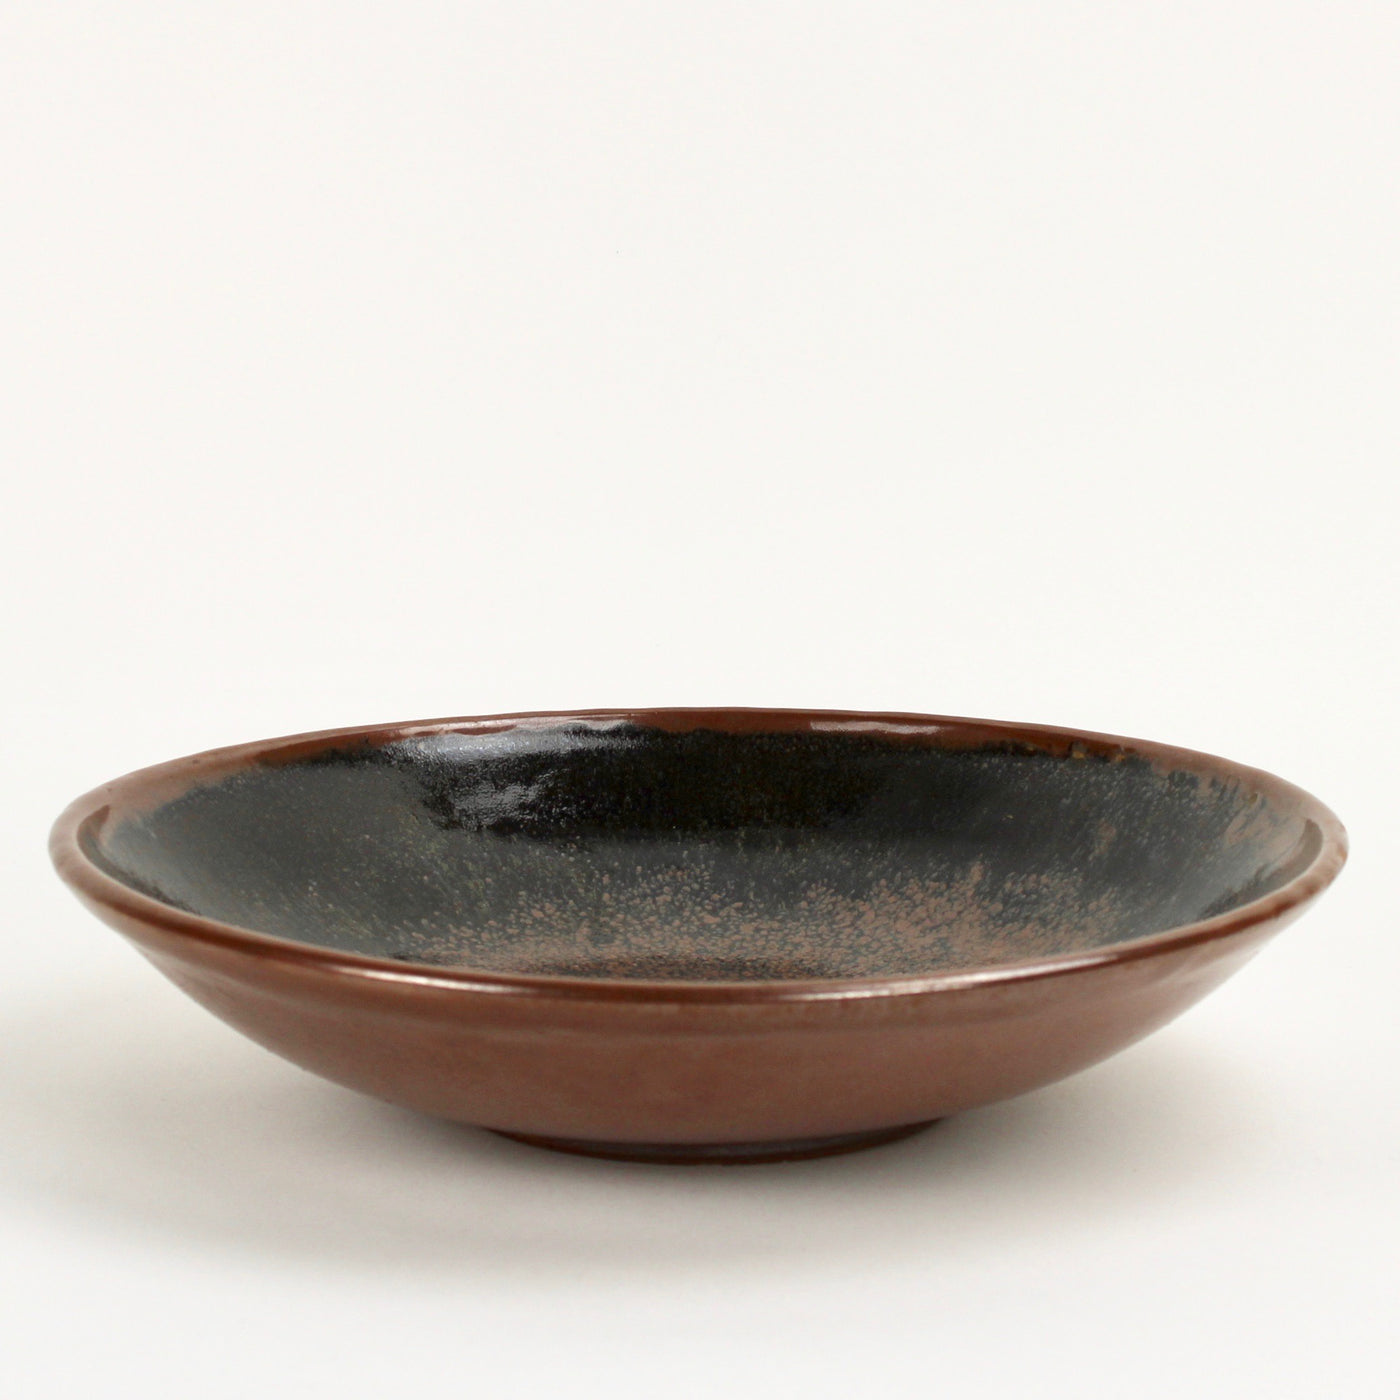 Large flat bowl - black